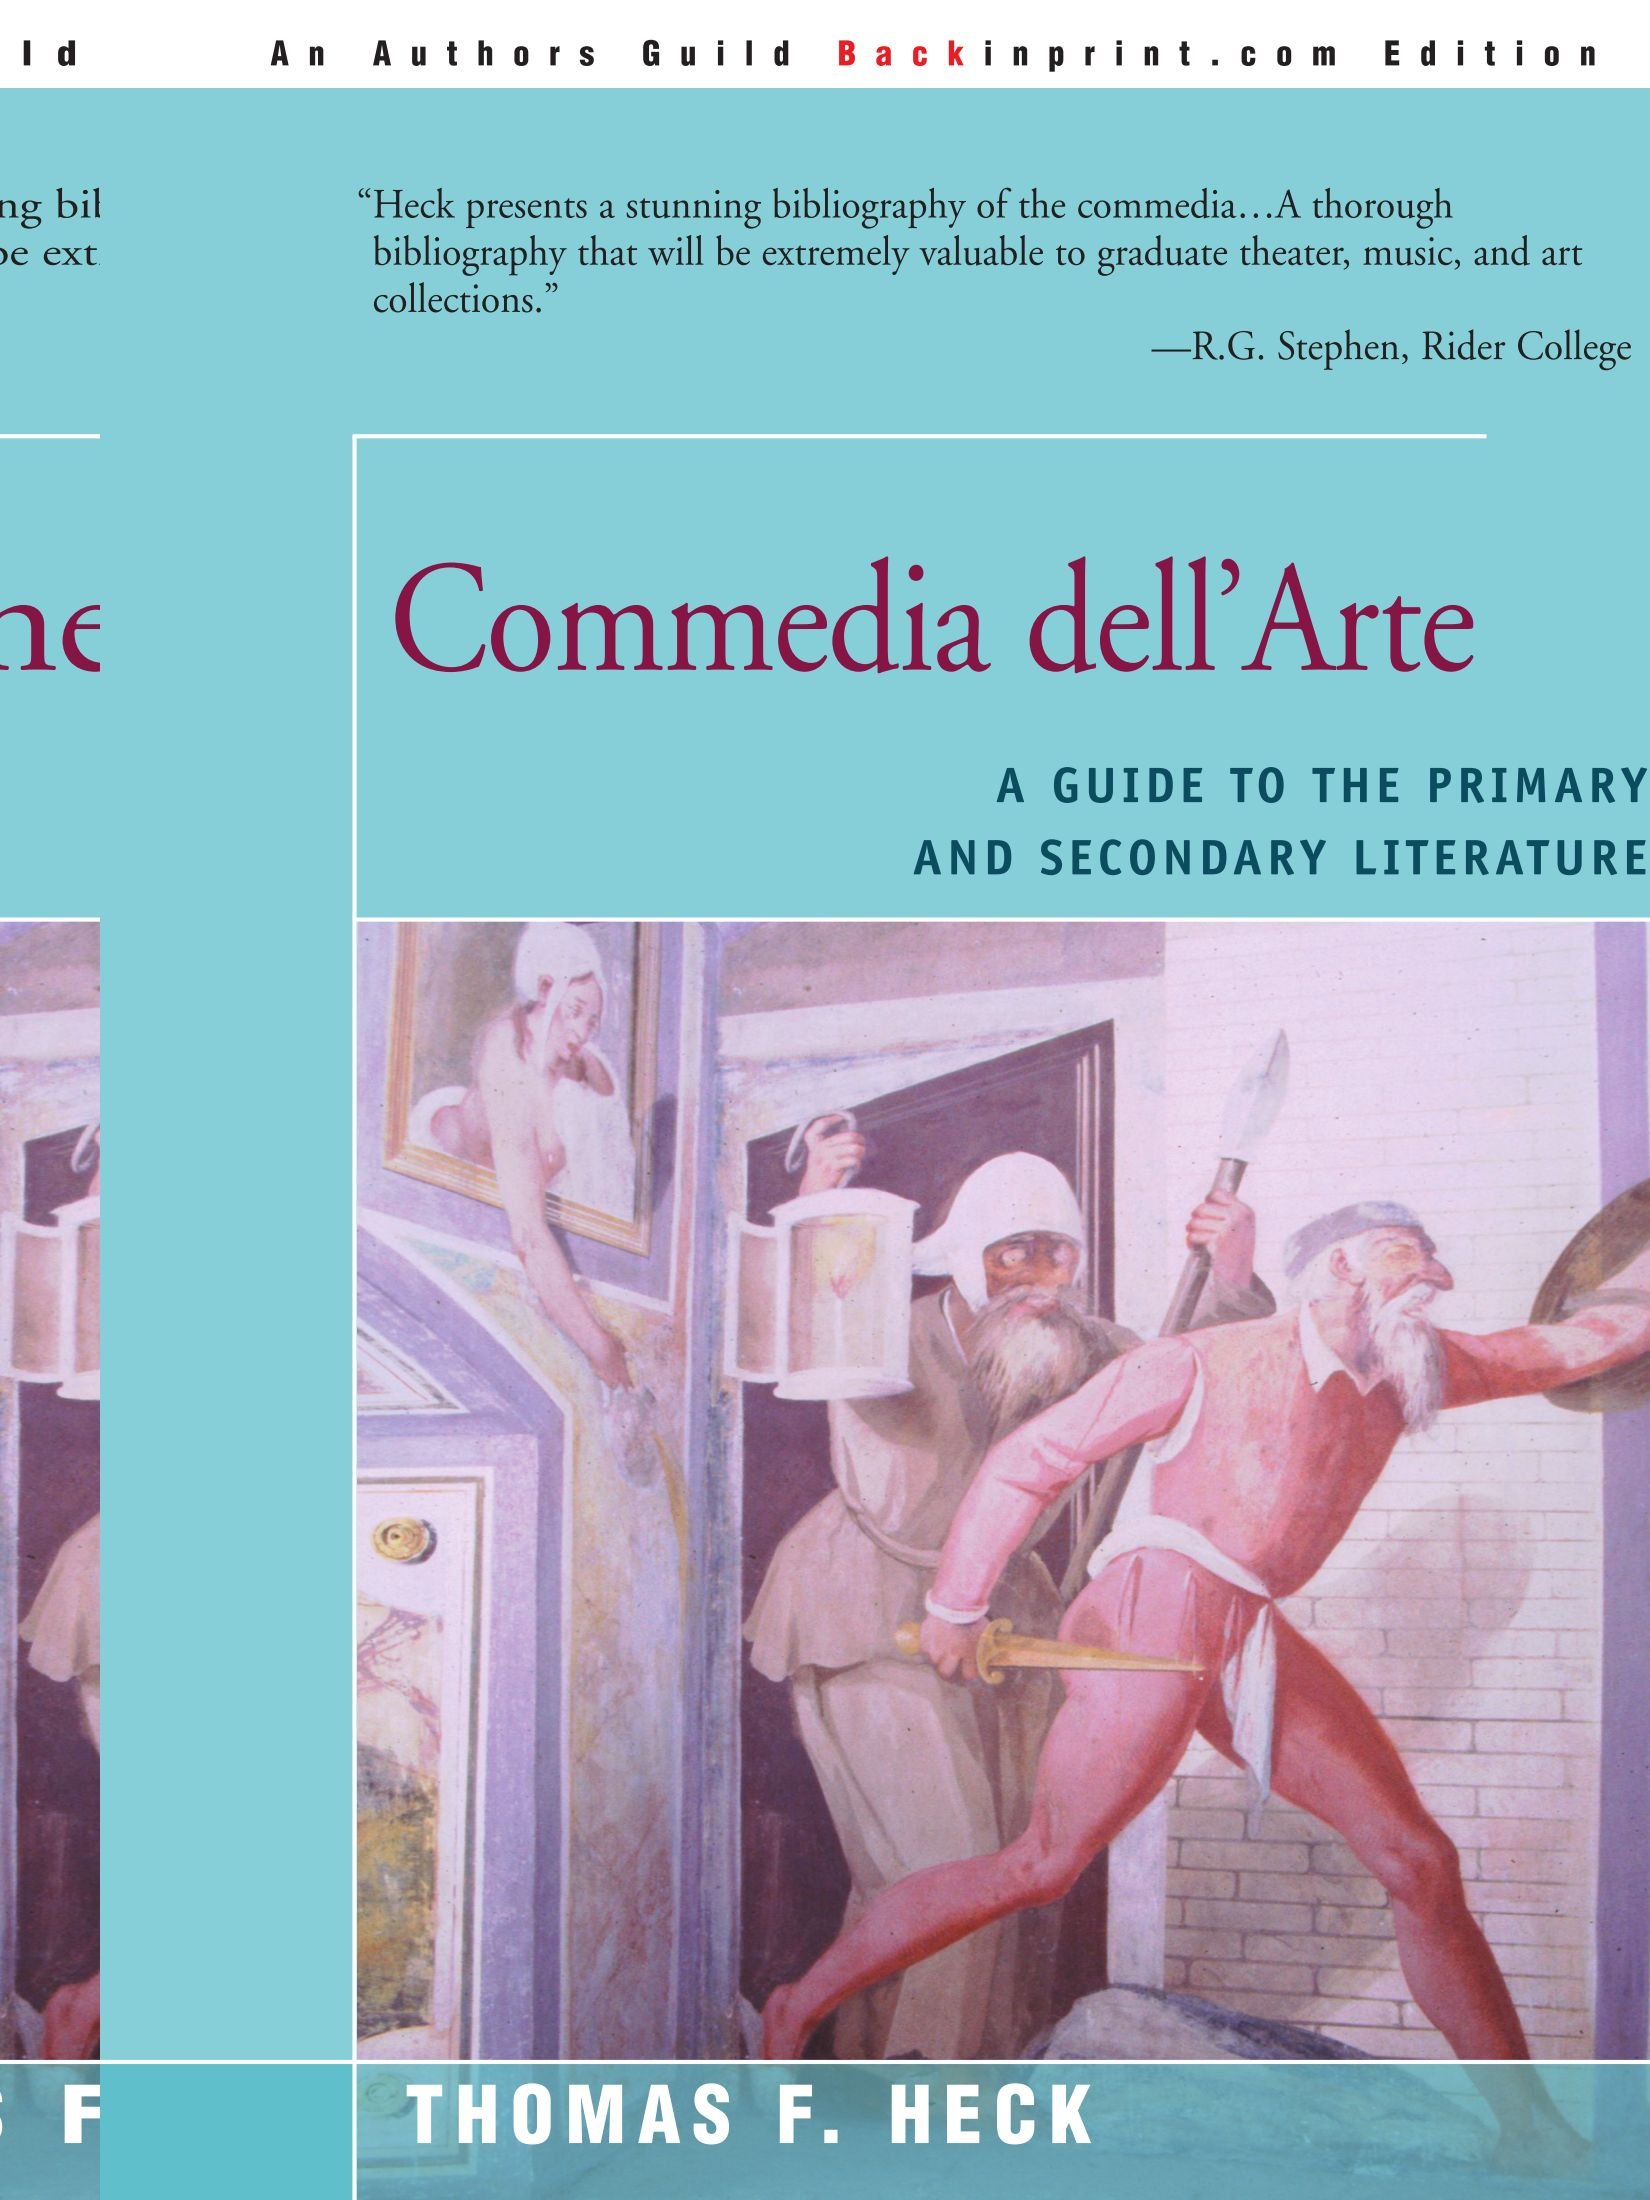 Commedia Dell'arte: A Guide to the Primary and Secondary Literature por Thomas F. Heck